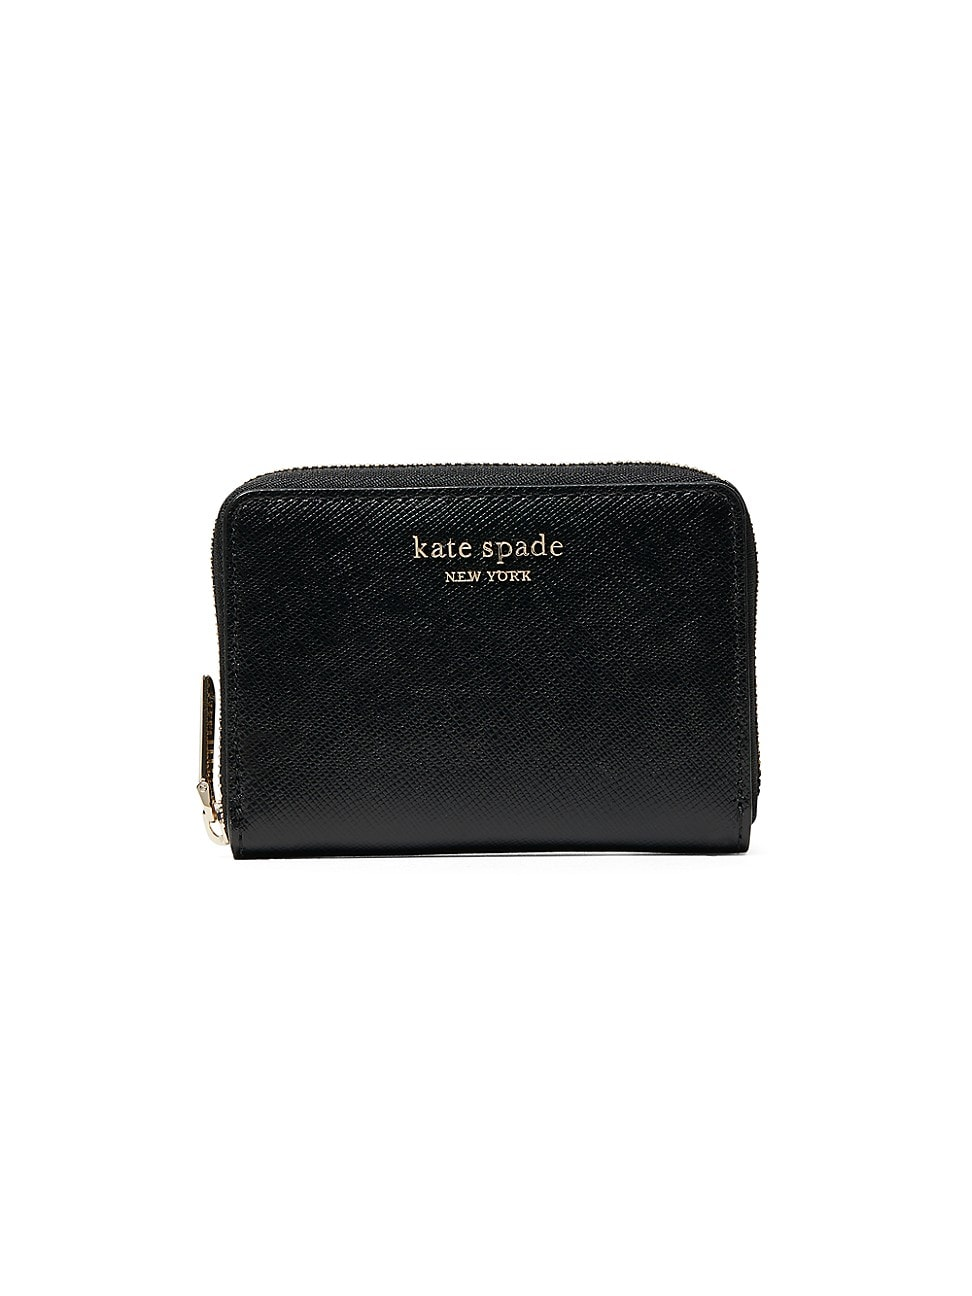 Kate Spade WOMEN'S SPENCER ZIP LEATHER CARD CASE